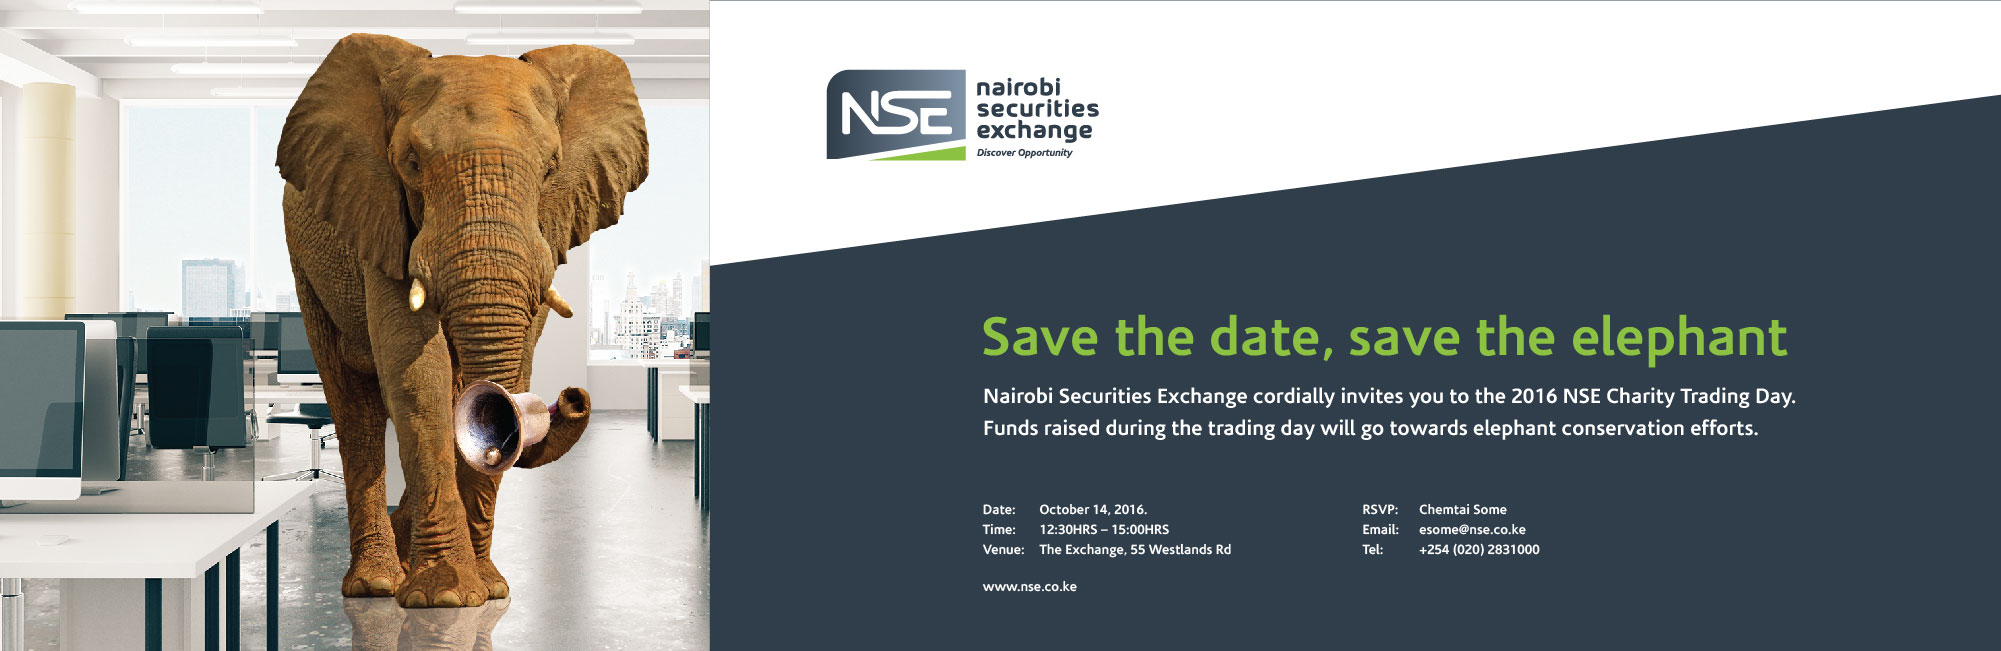 nse-save-the-date-2000x650-px-02